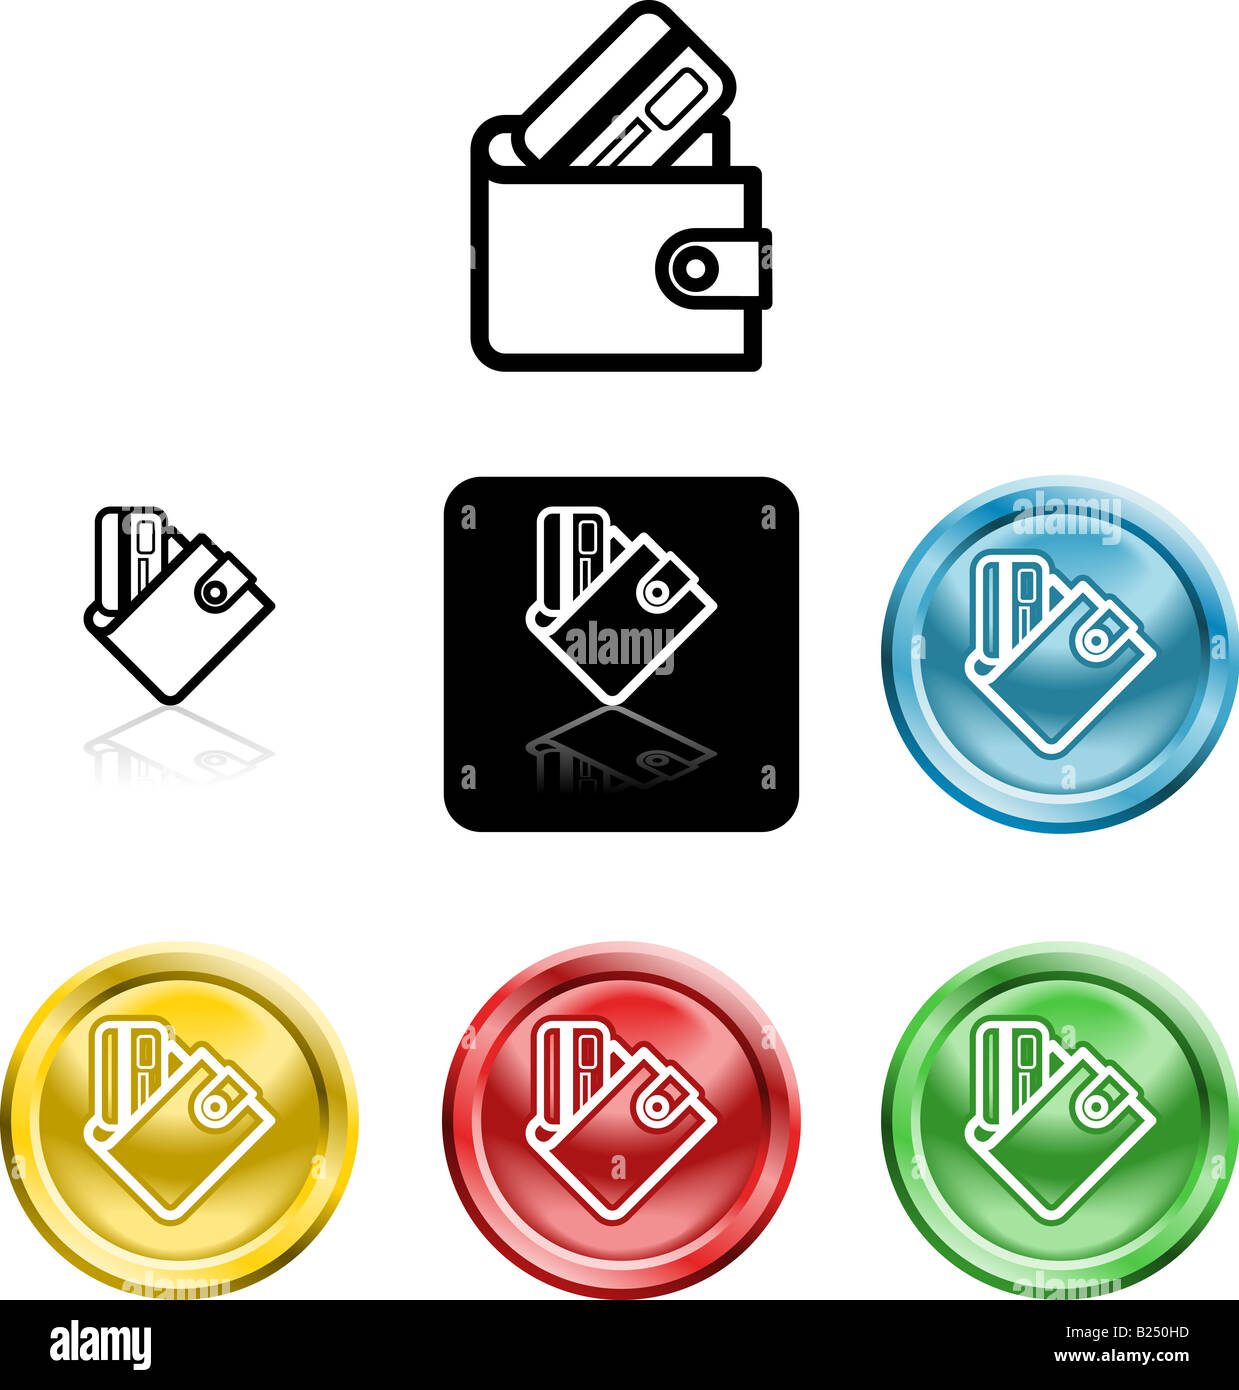 Several versions of an icon symbol of a stylised wallet and credit card - Stock Image